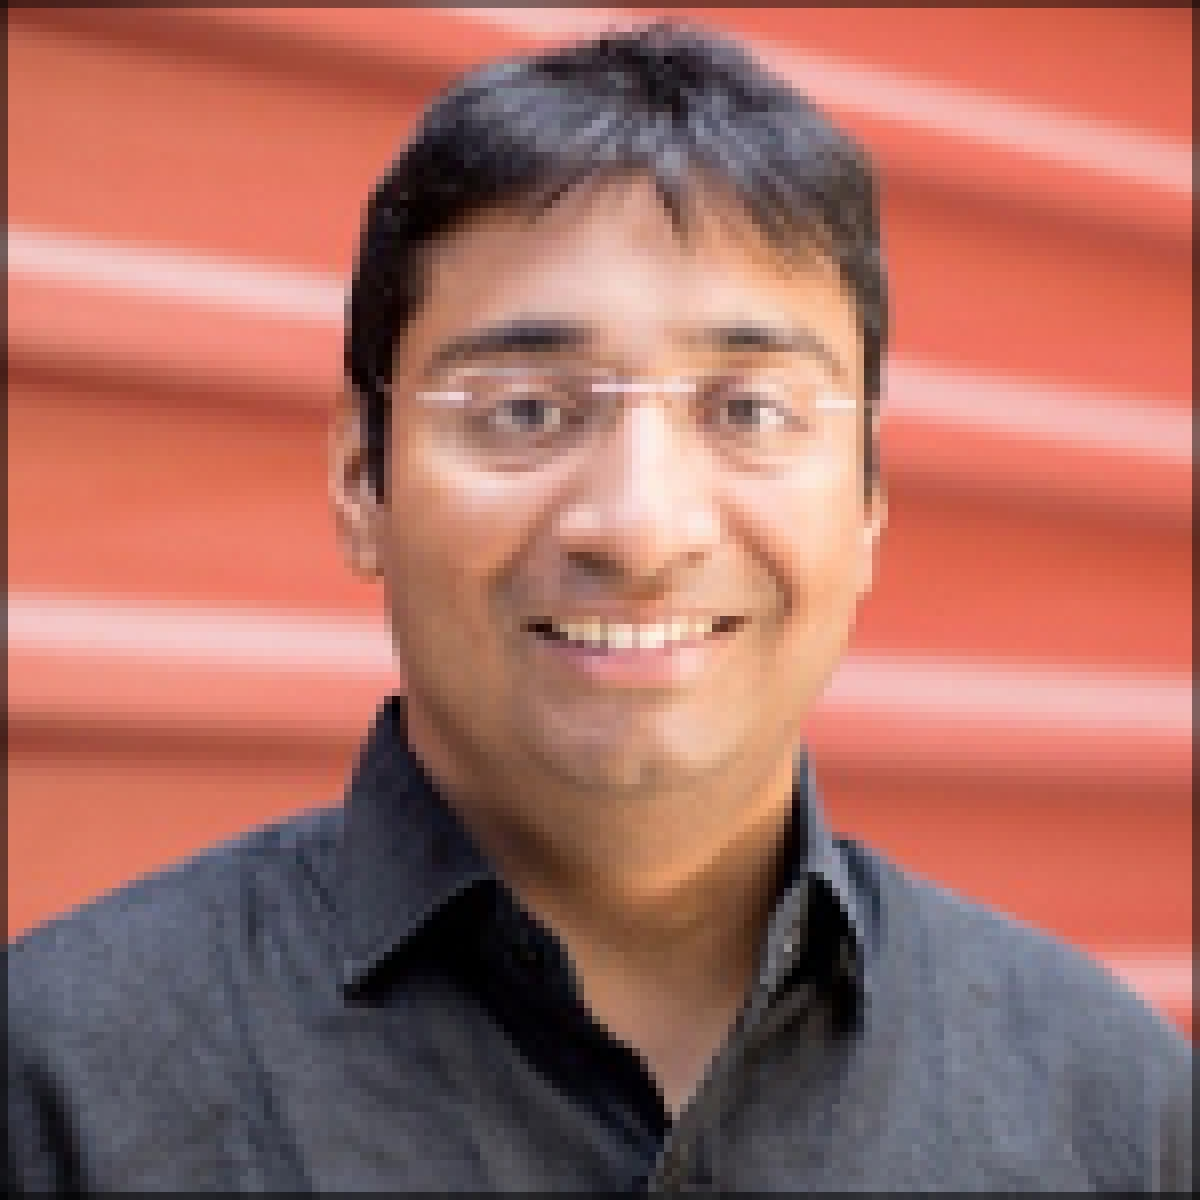 Abhay Singhal is now inMobi UMC's CEO